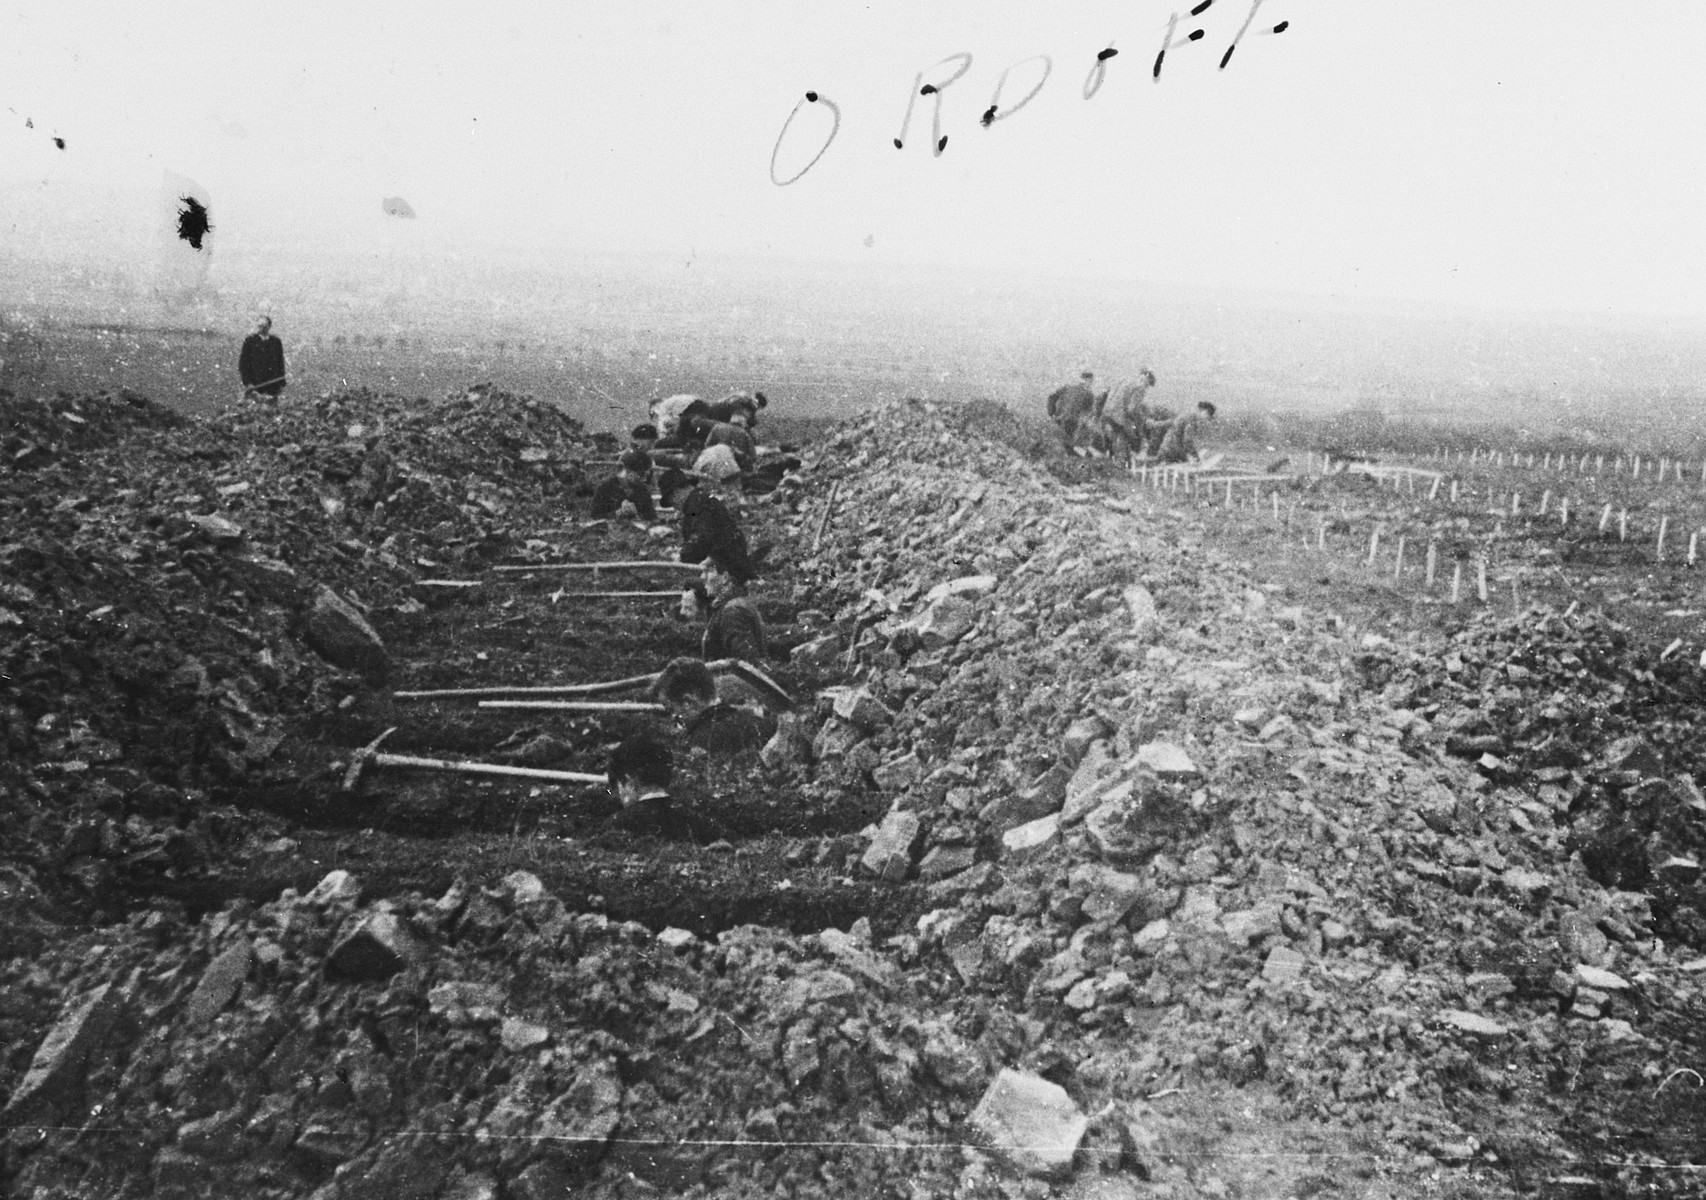 German civilians are forced to bury corpses in the Ohrdruf concentration camp.